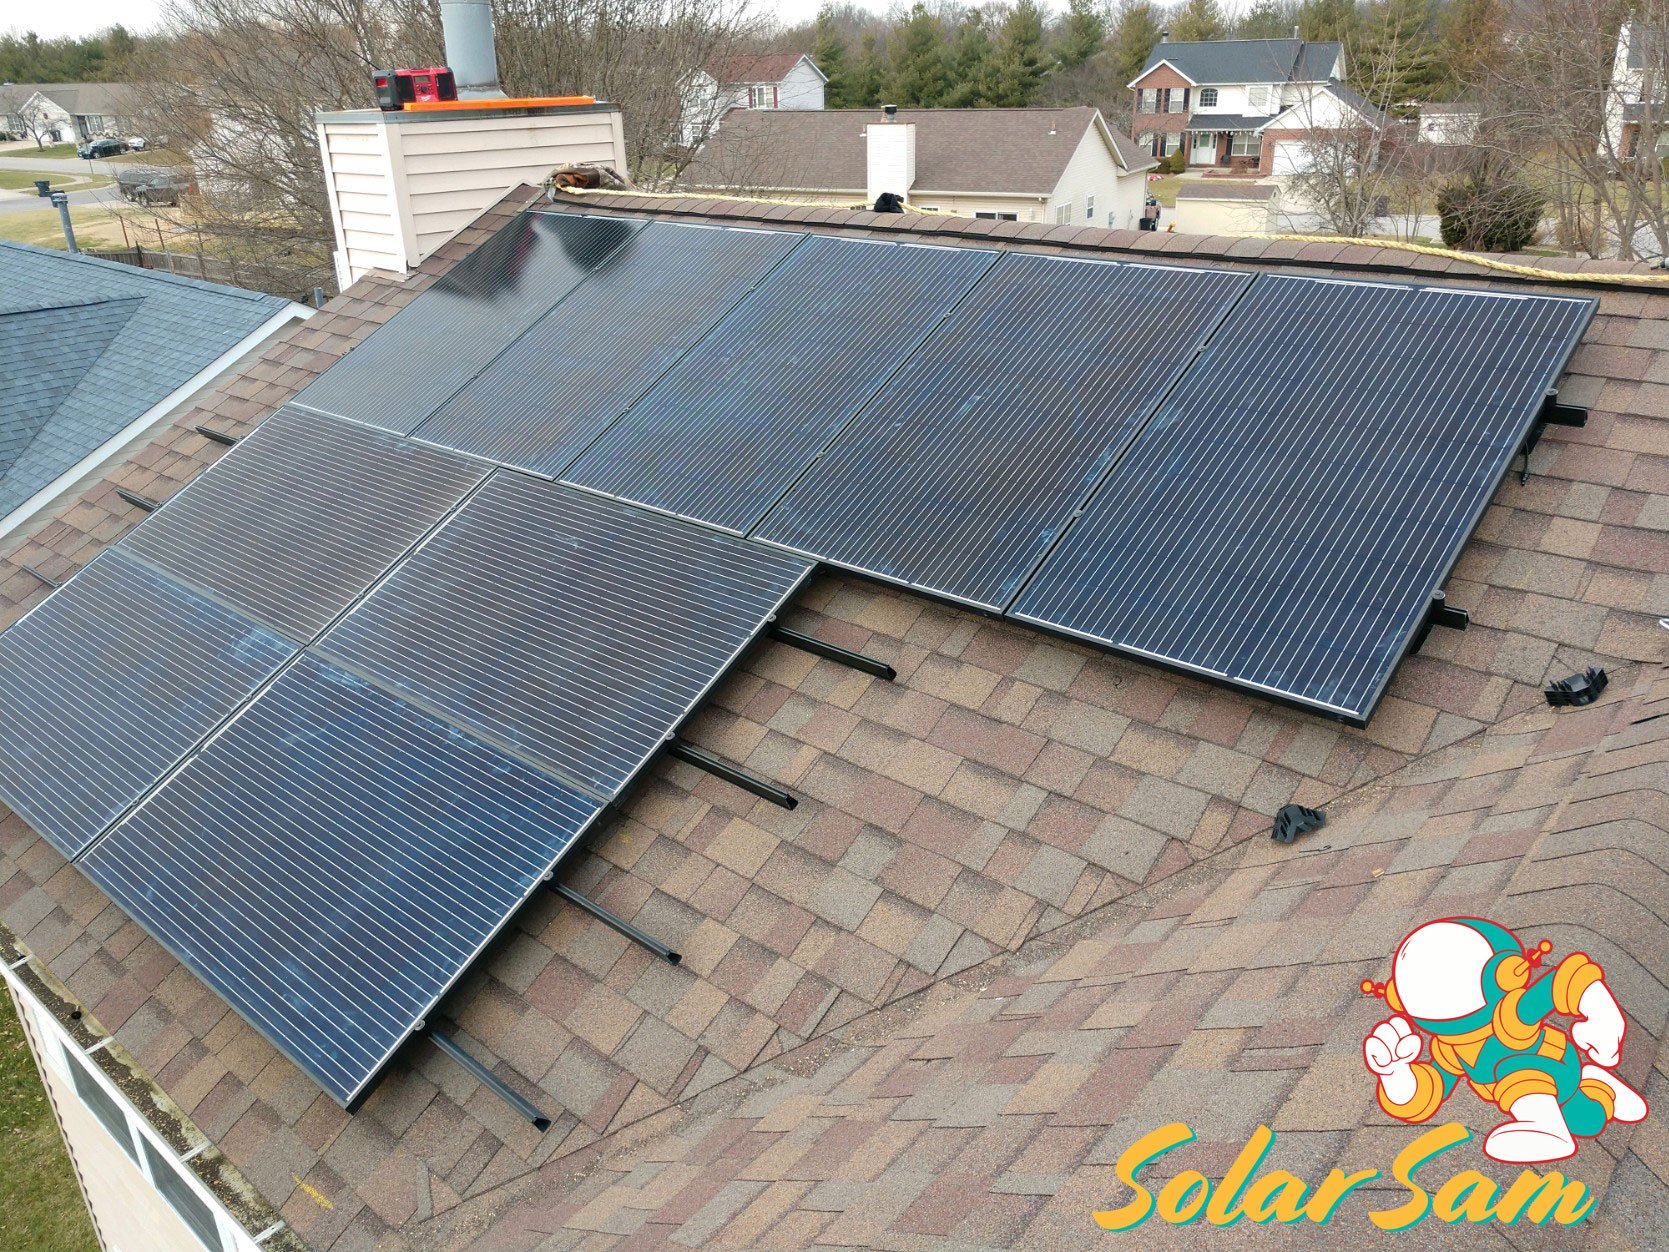 Home Roof Solar Panel Installation Belleville Illinois Roof Mounted Solar Sam Silfab Panels Solar Edge Inverter ATT Cellular Monitoring Green Electricity